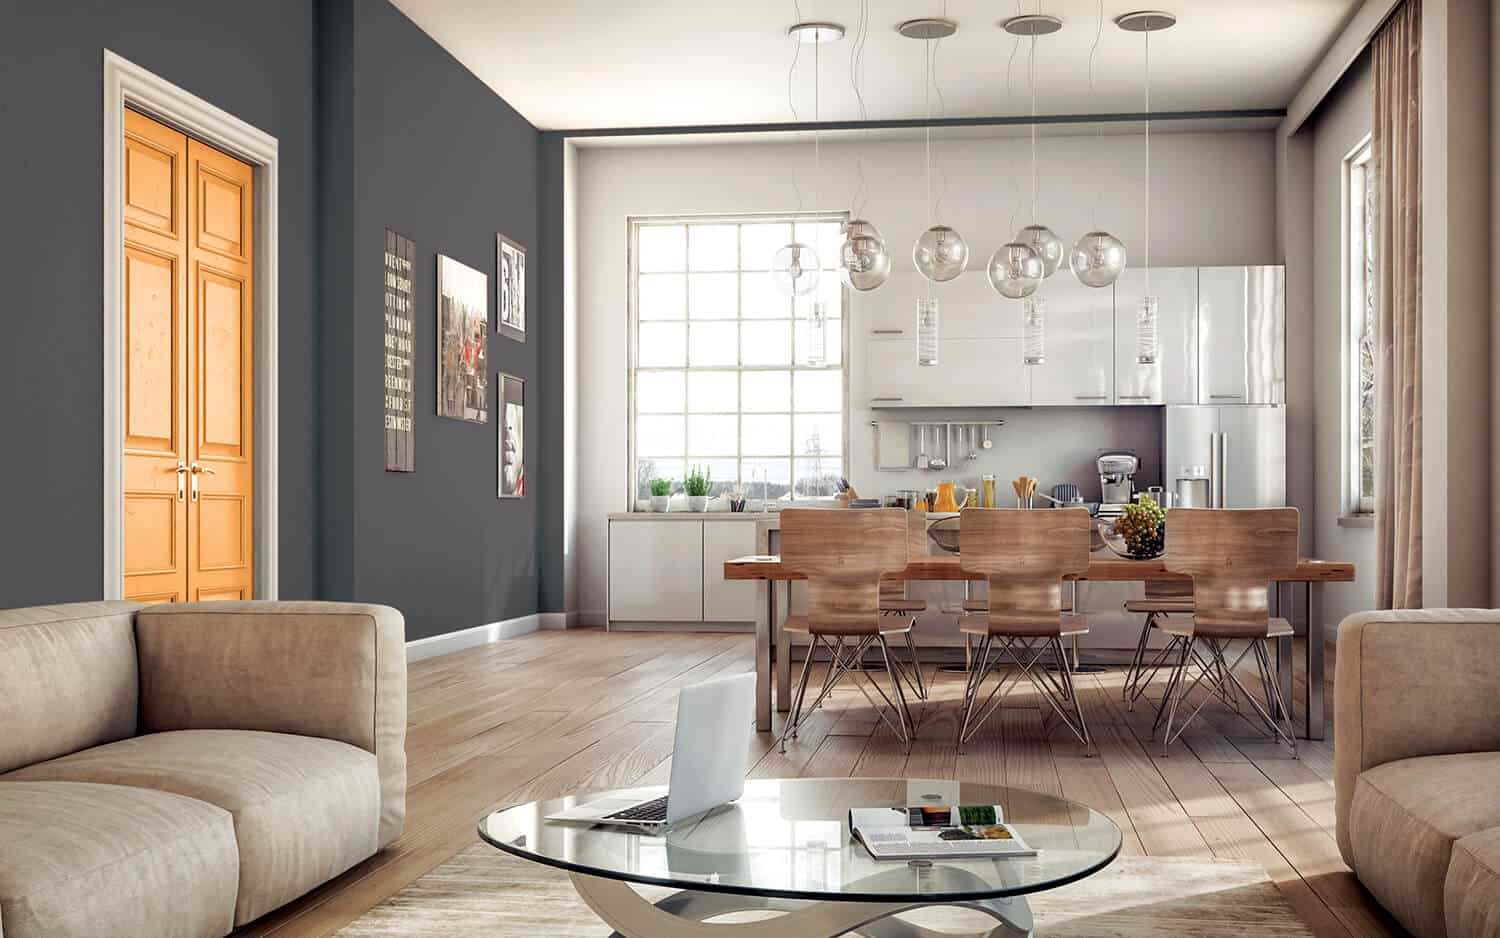 white and grey walls create color balance of room's walls